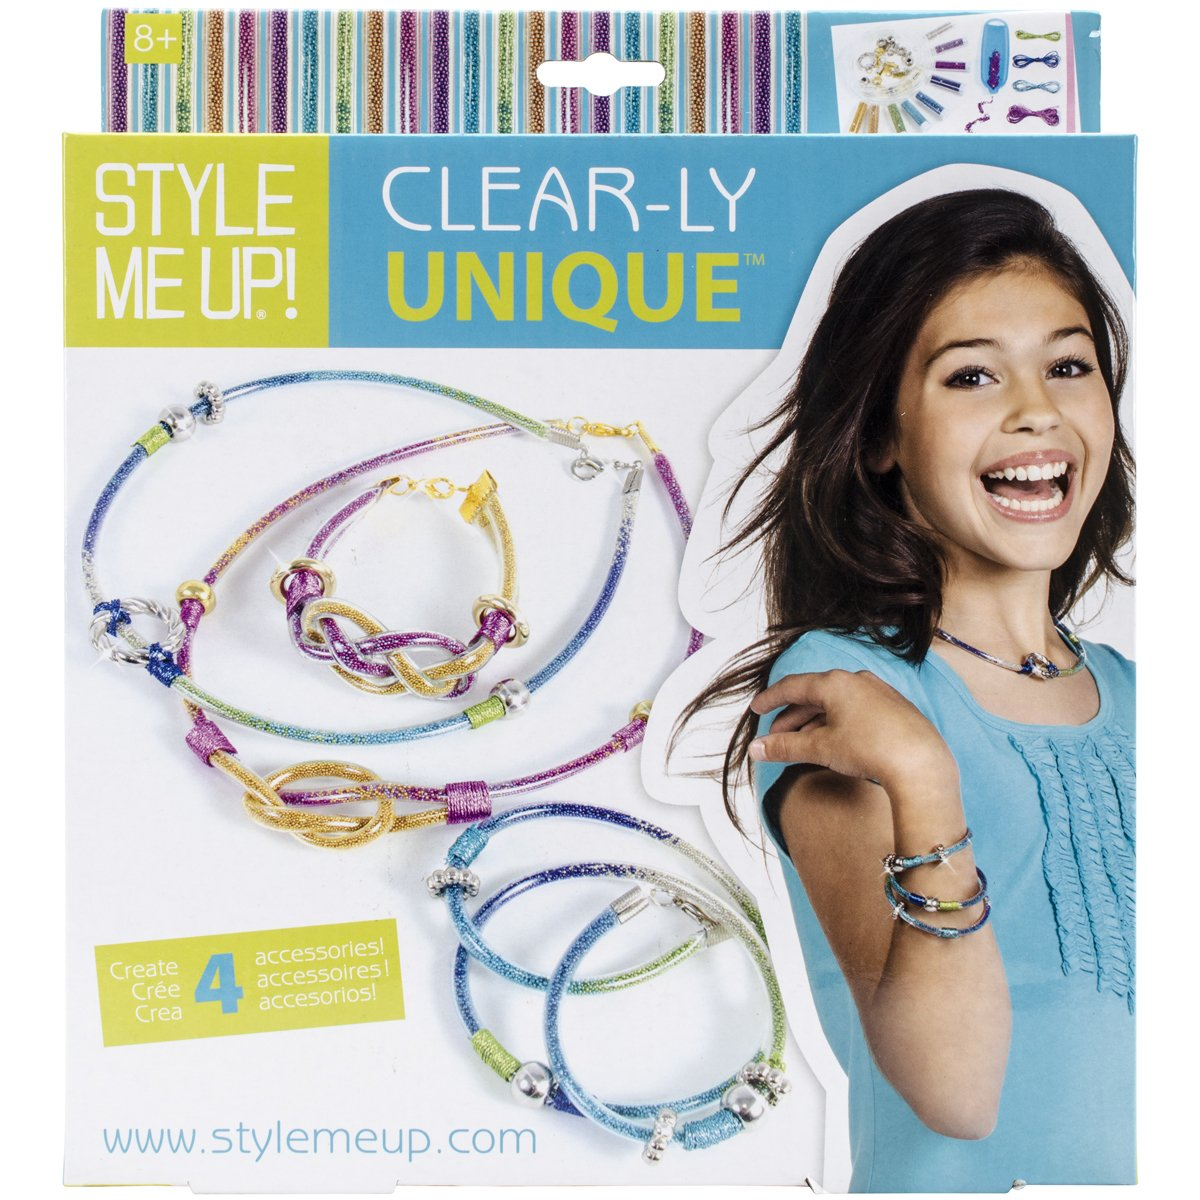 Girls Bracelet and Necklace Craft Kit SMU-624 Wooky Entertainment W624 Style Me Up Kids DIY Bead Bracelet and Necklace Craft Set for Girls